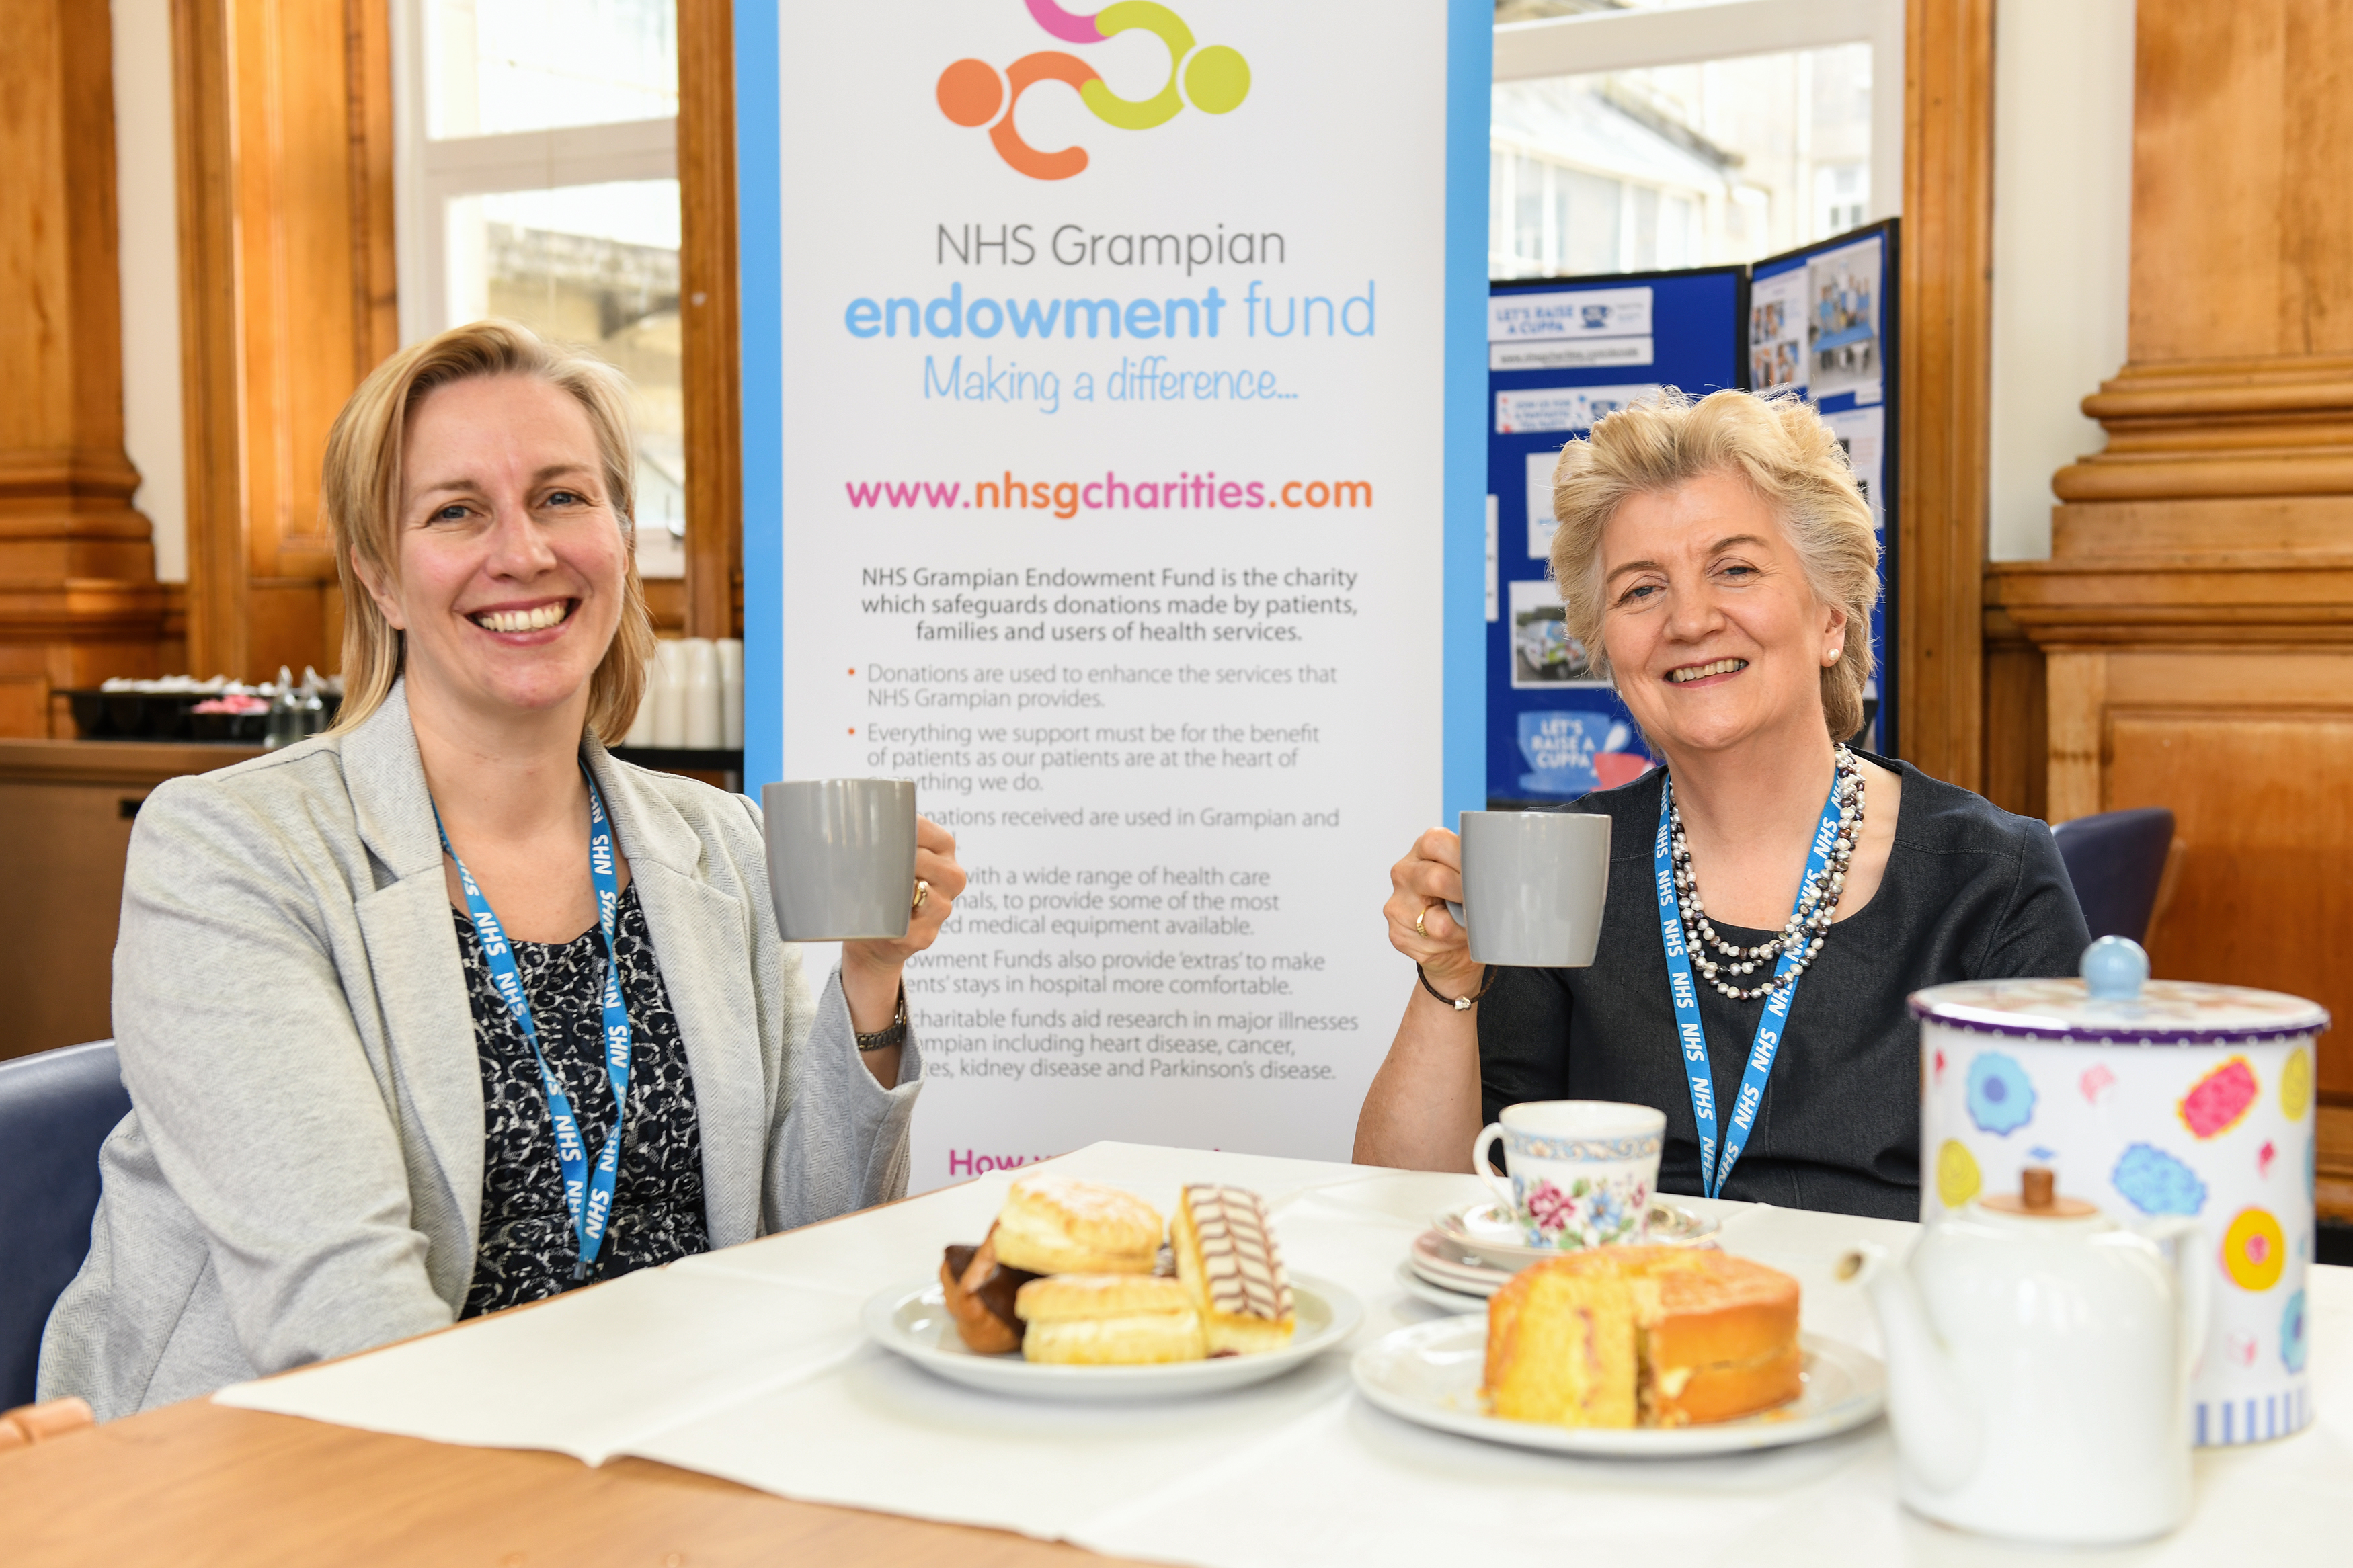 The campaign hopes to encourage the public to donate to help improve north-east facilities.